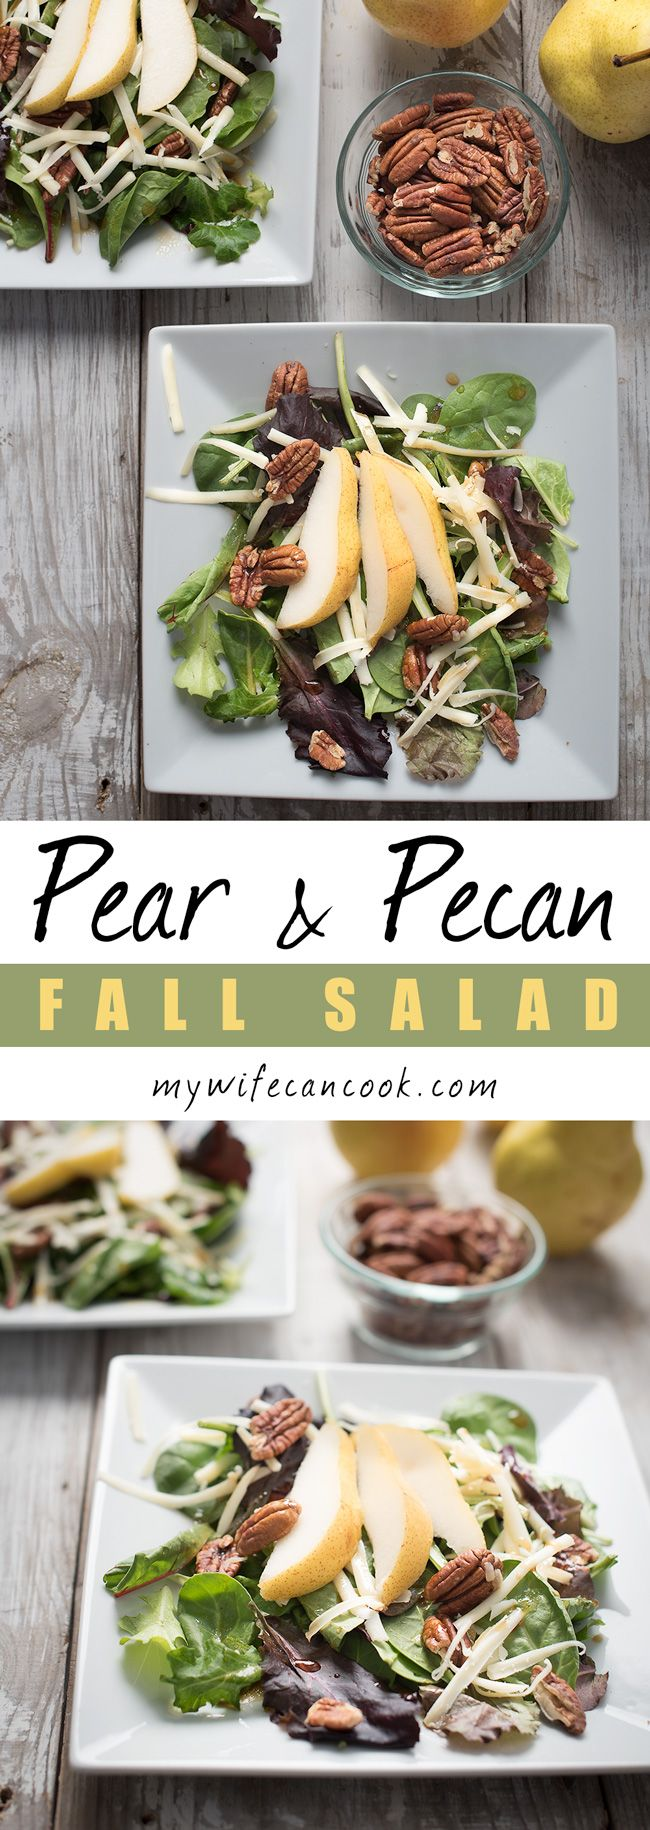 This Toasted Pecan and Pear Salad with white cheddar cheese tops our favorite pear recipes and is one of our favorite fall salads. We also never turn down anything with toasted pecans...such a great flavor and a great addition to so many salads and dishes. So, if you're looking for the perfect fall salad or the perfect use for pecans, look no further! We also absolutely love the pairing of pears and white cheddar cheese...they go together so well and our magical on this salad.